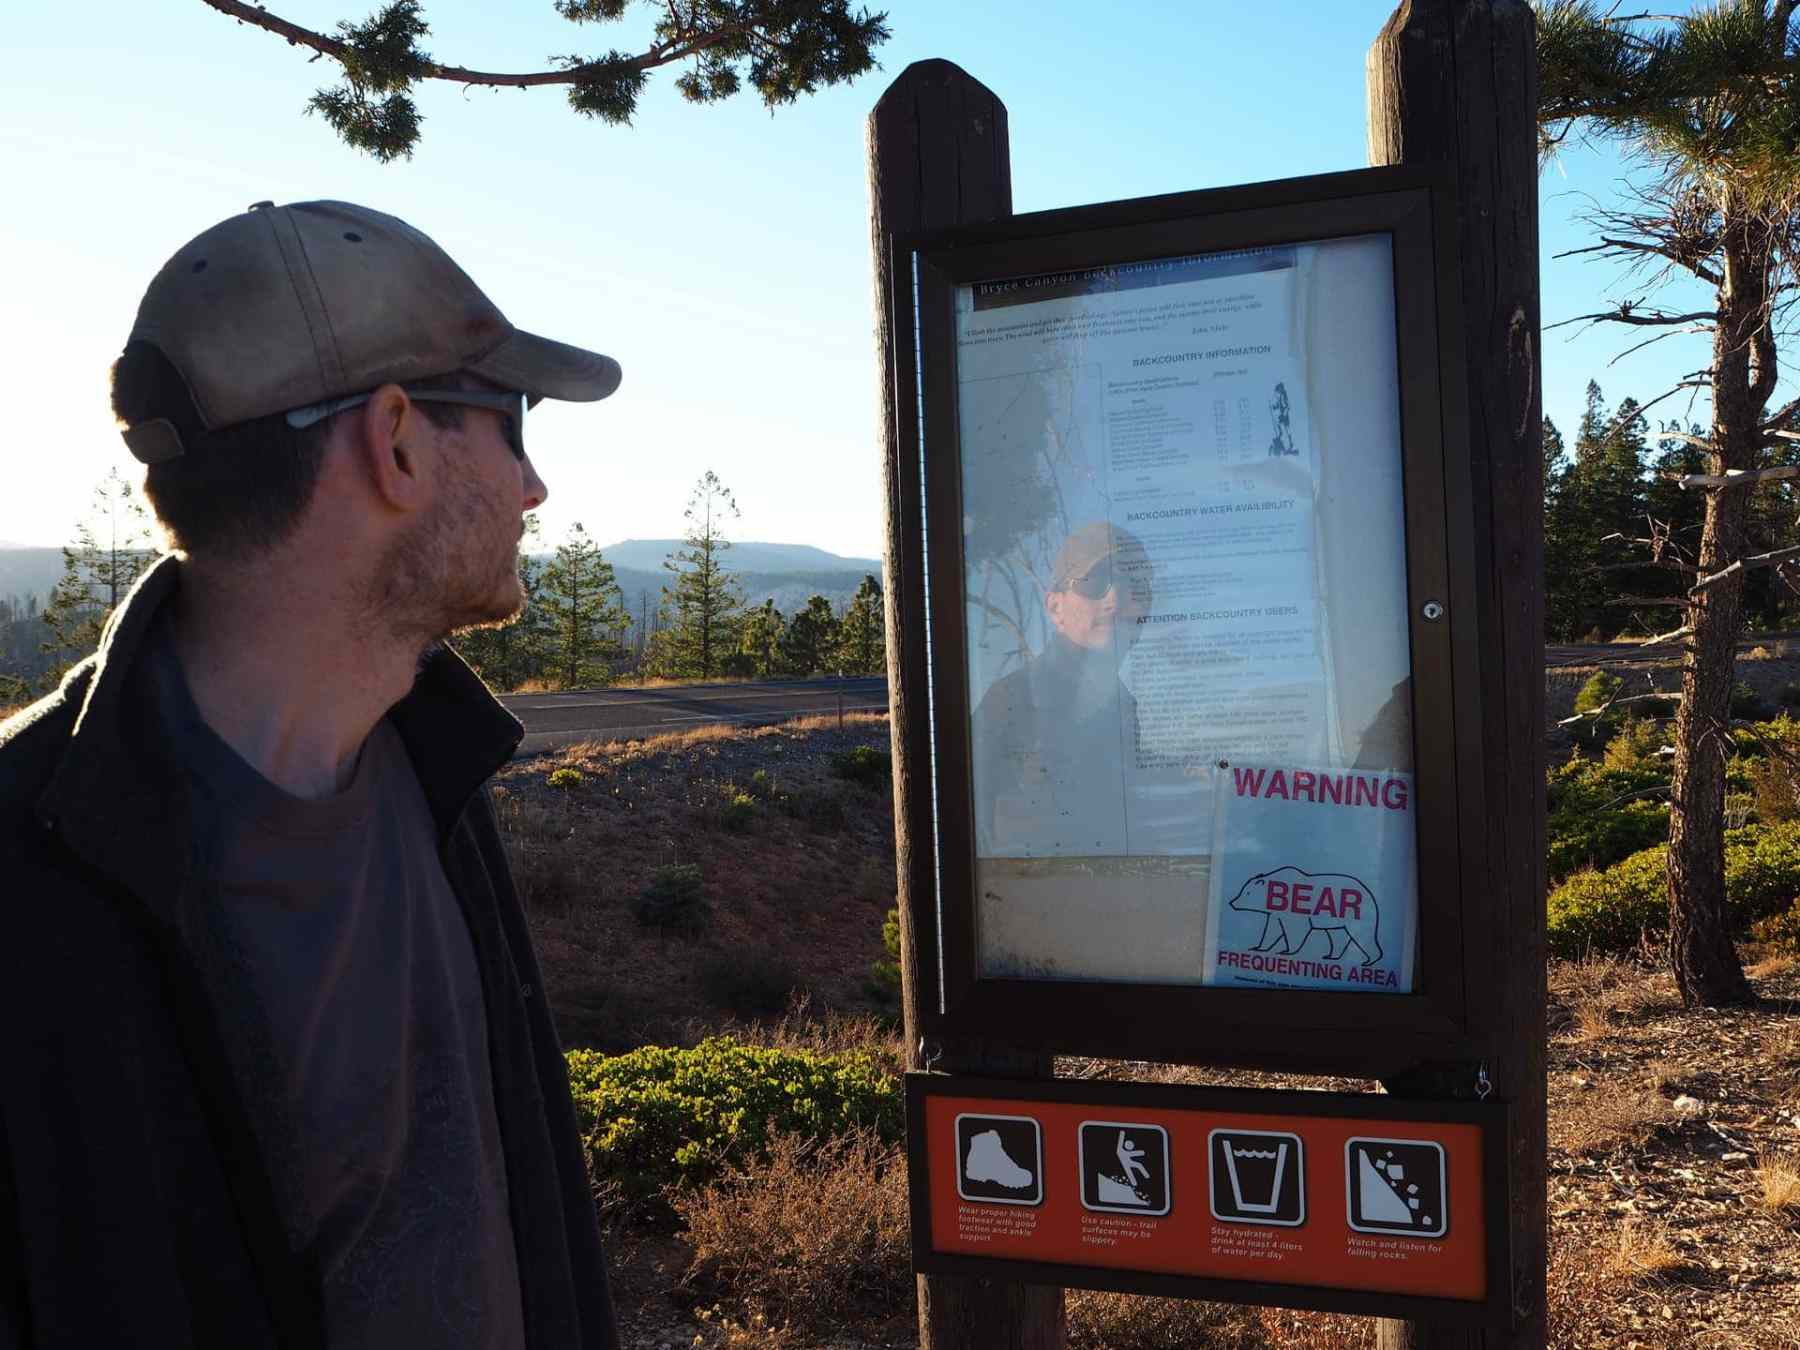 Keith was reading the information, but all I could see was the bear warning!